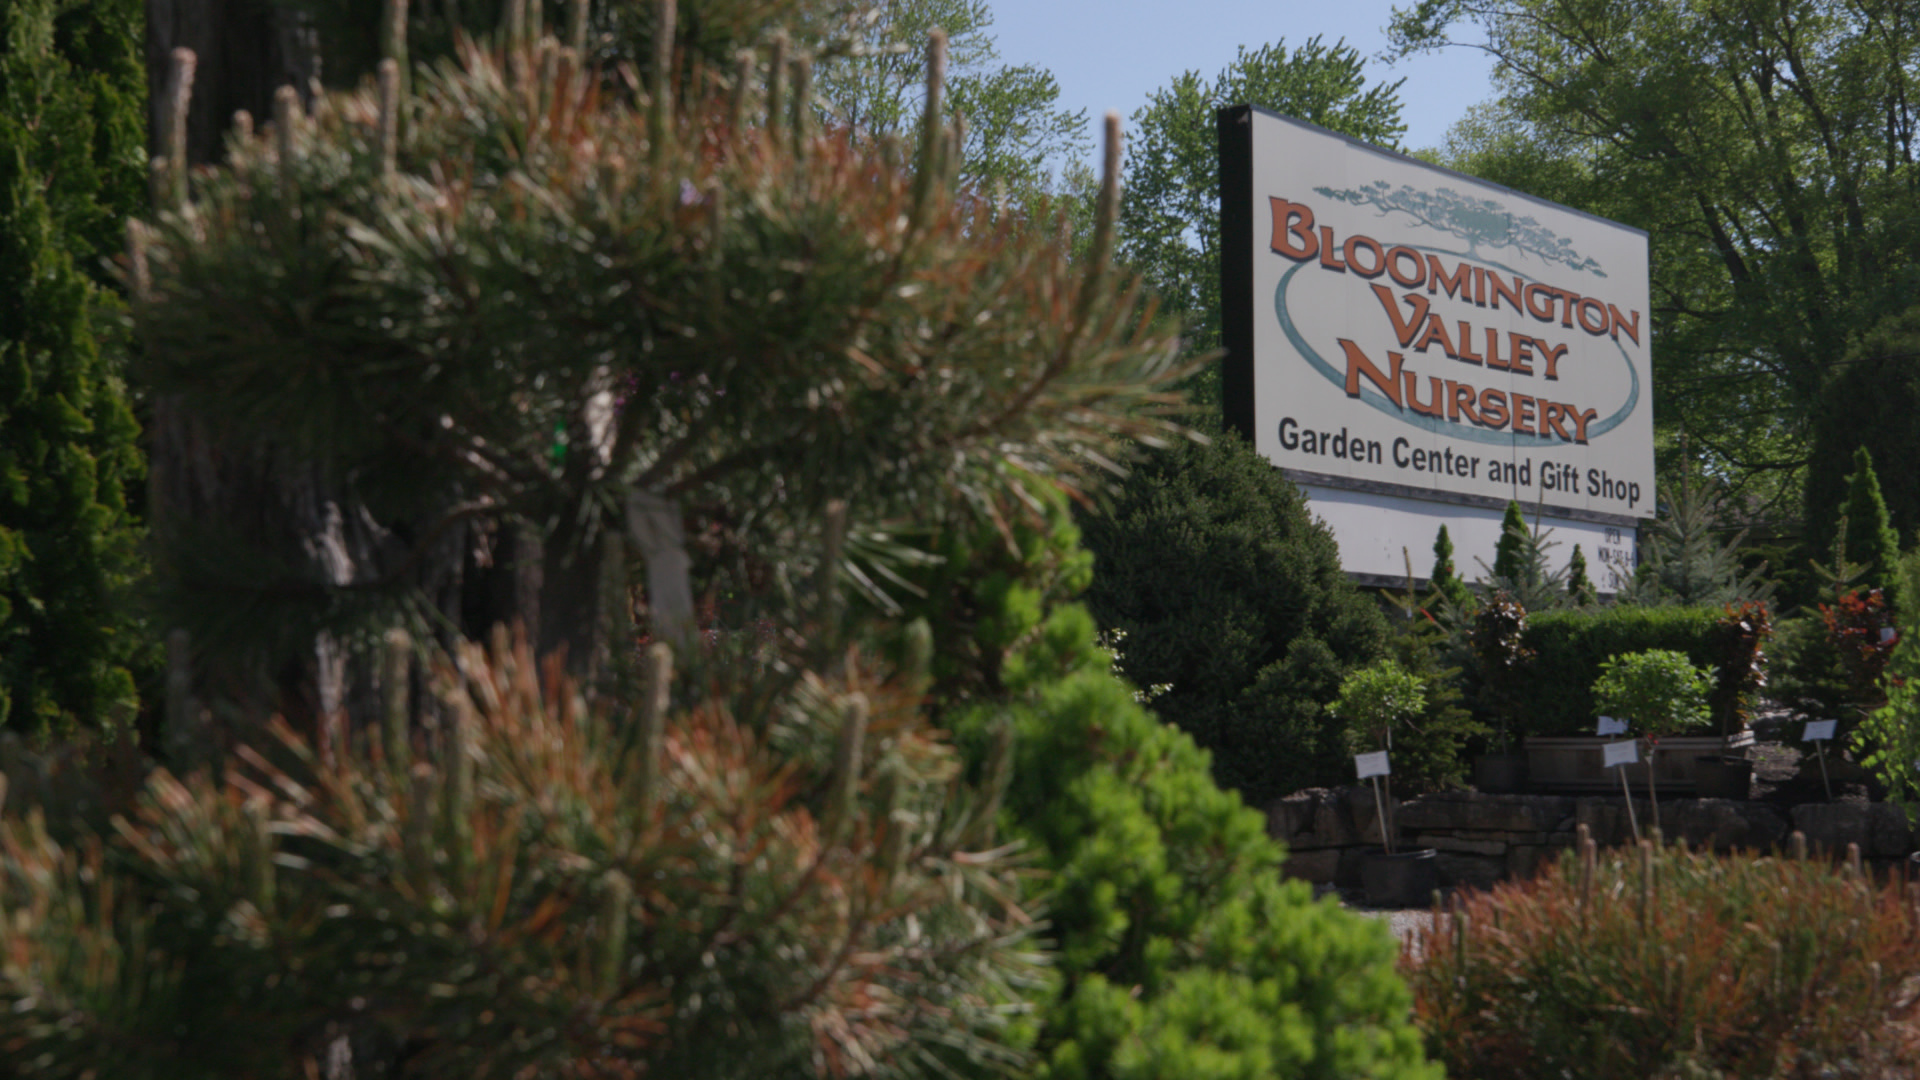 On this picture you can see a sign advertising the Bloomington Valley Nursery.